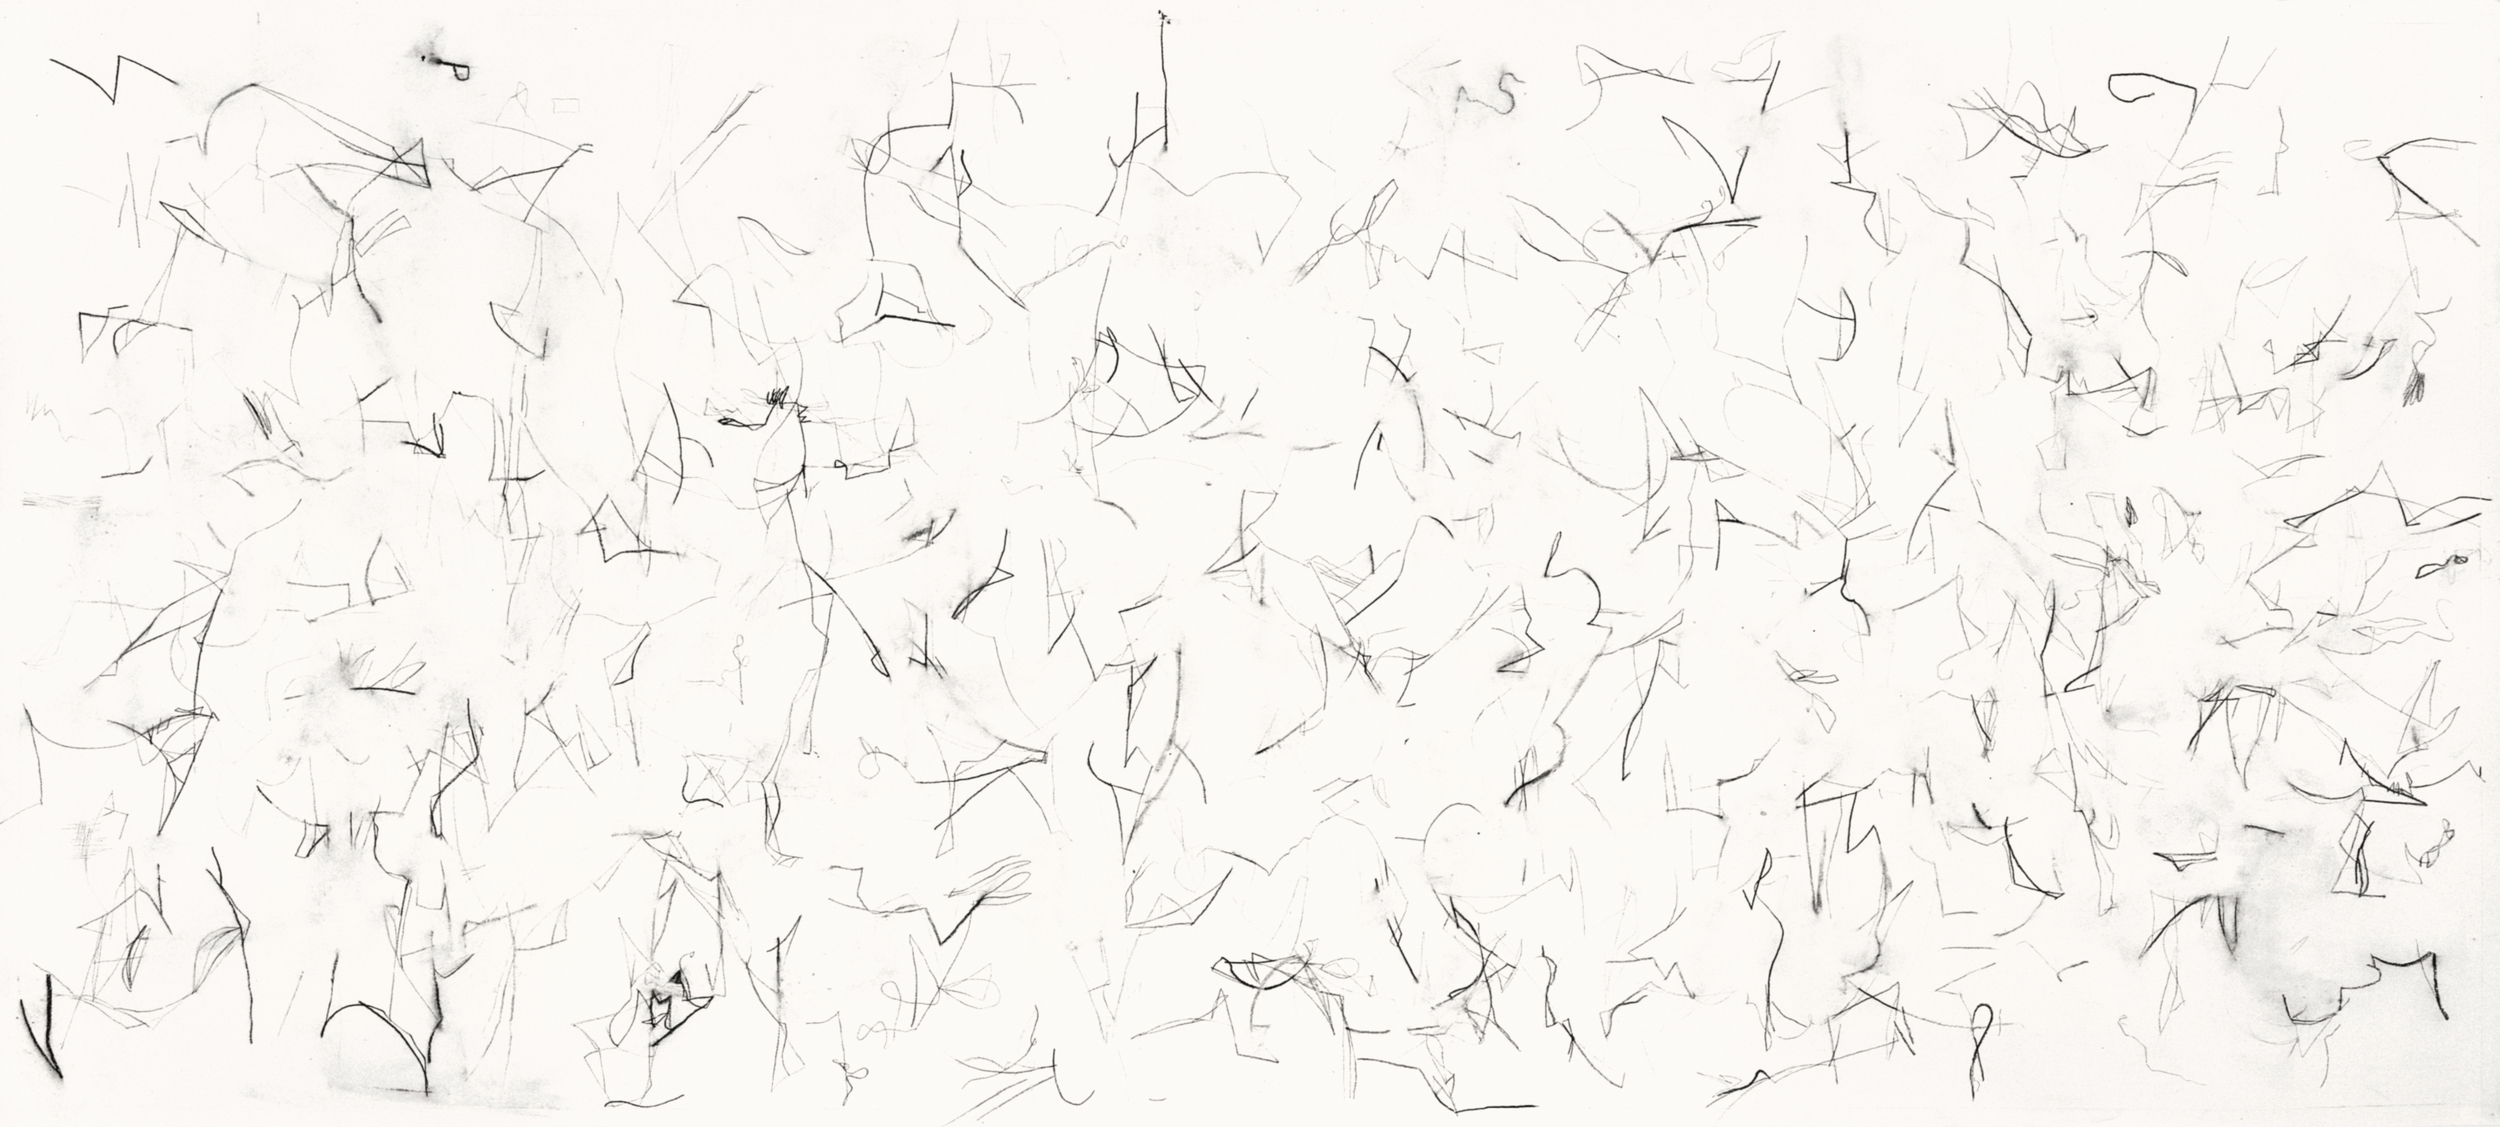 Untitled (L.99.1), 1999 charcoal, rabbit skin glue on paper ca. 48 x 107 inches Collection: Sarah-Ann and Werner H. Kramarsky